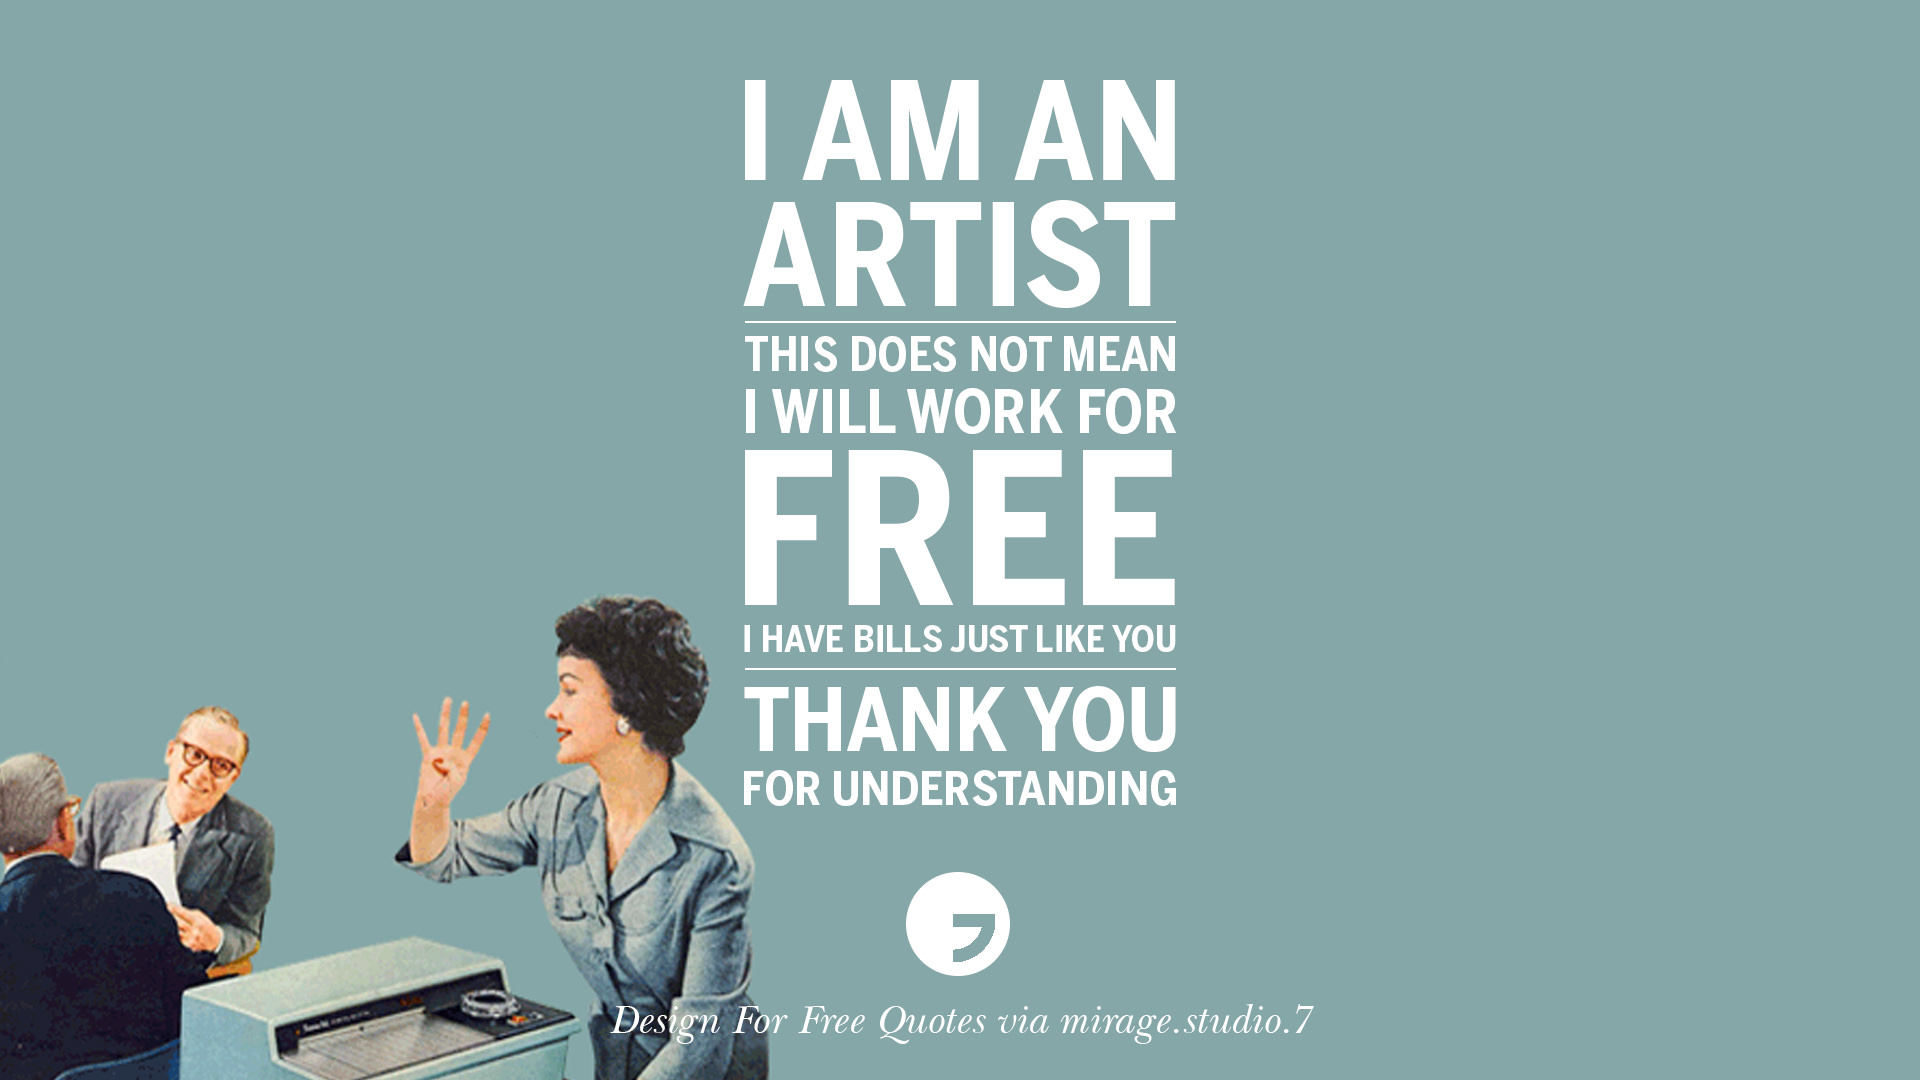 I Am An Artist This Does Not Mean Will Work For Free Have Bills Just Like You Thank Understanding